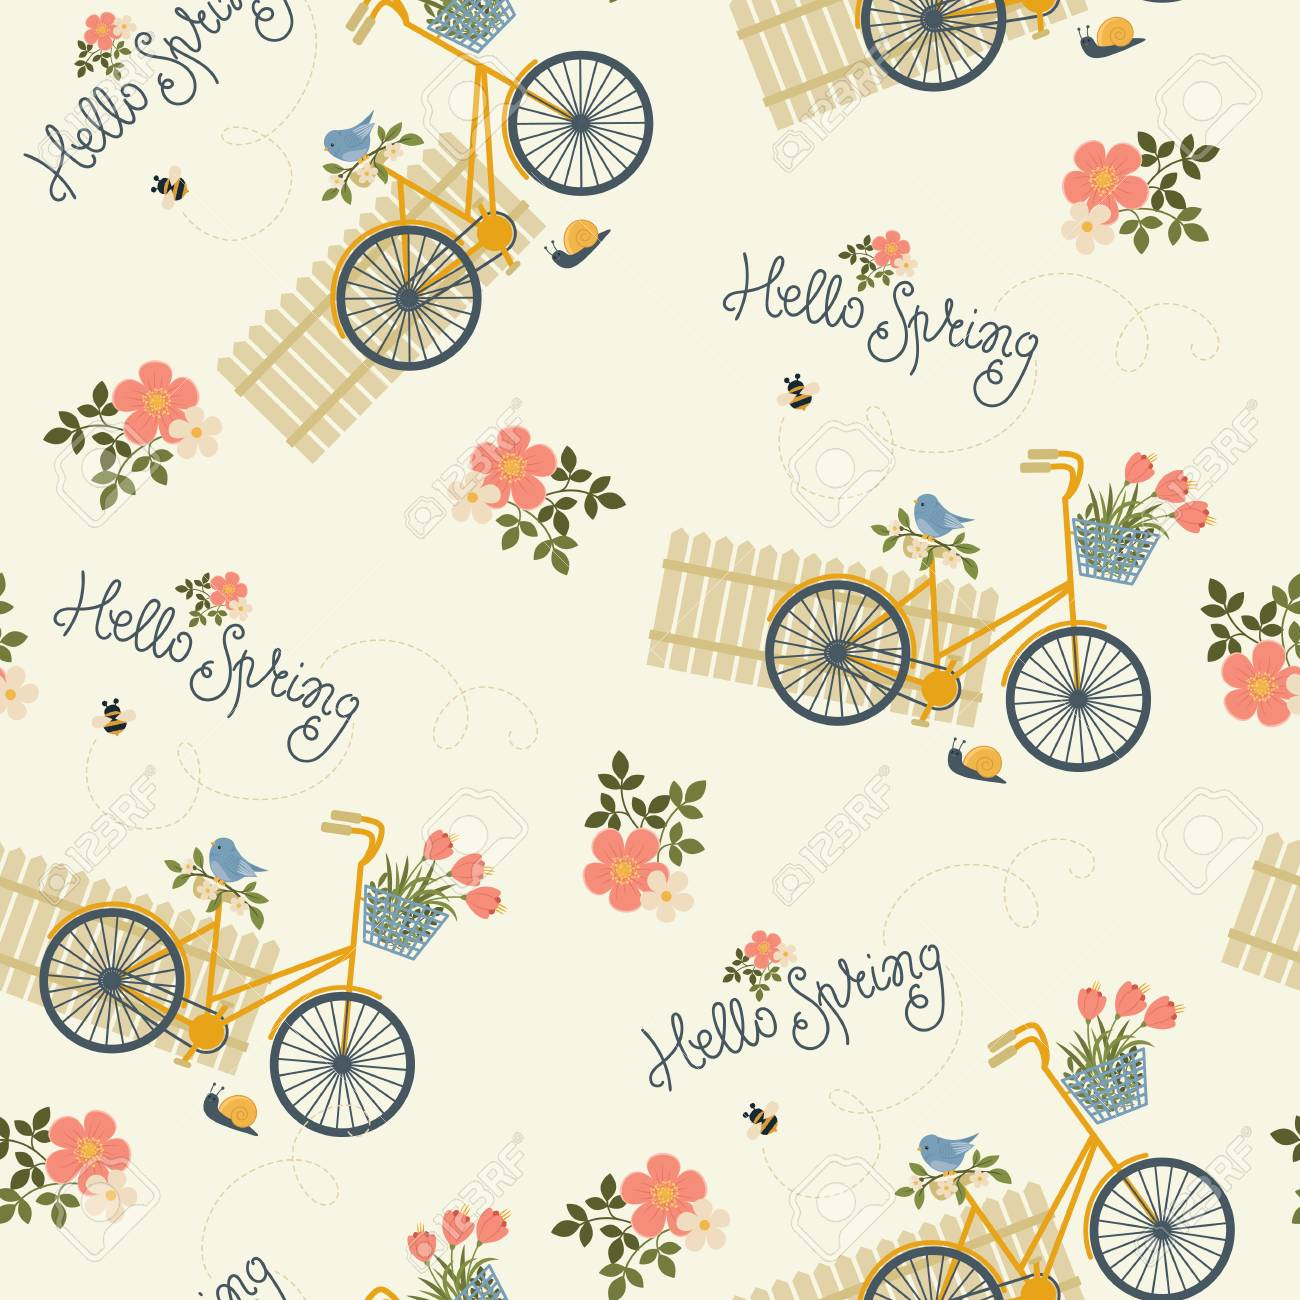 Spring Floral Seamless Wallpaper Bicycle Flowers Lettering